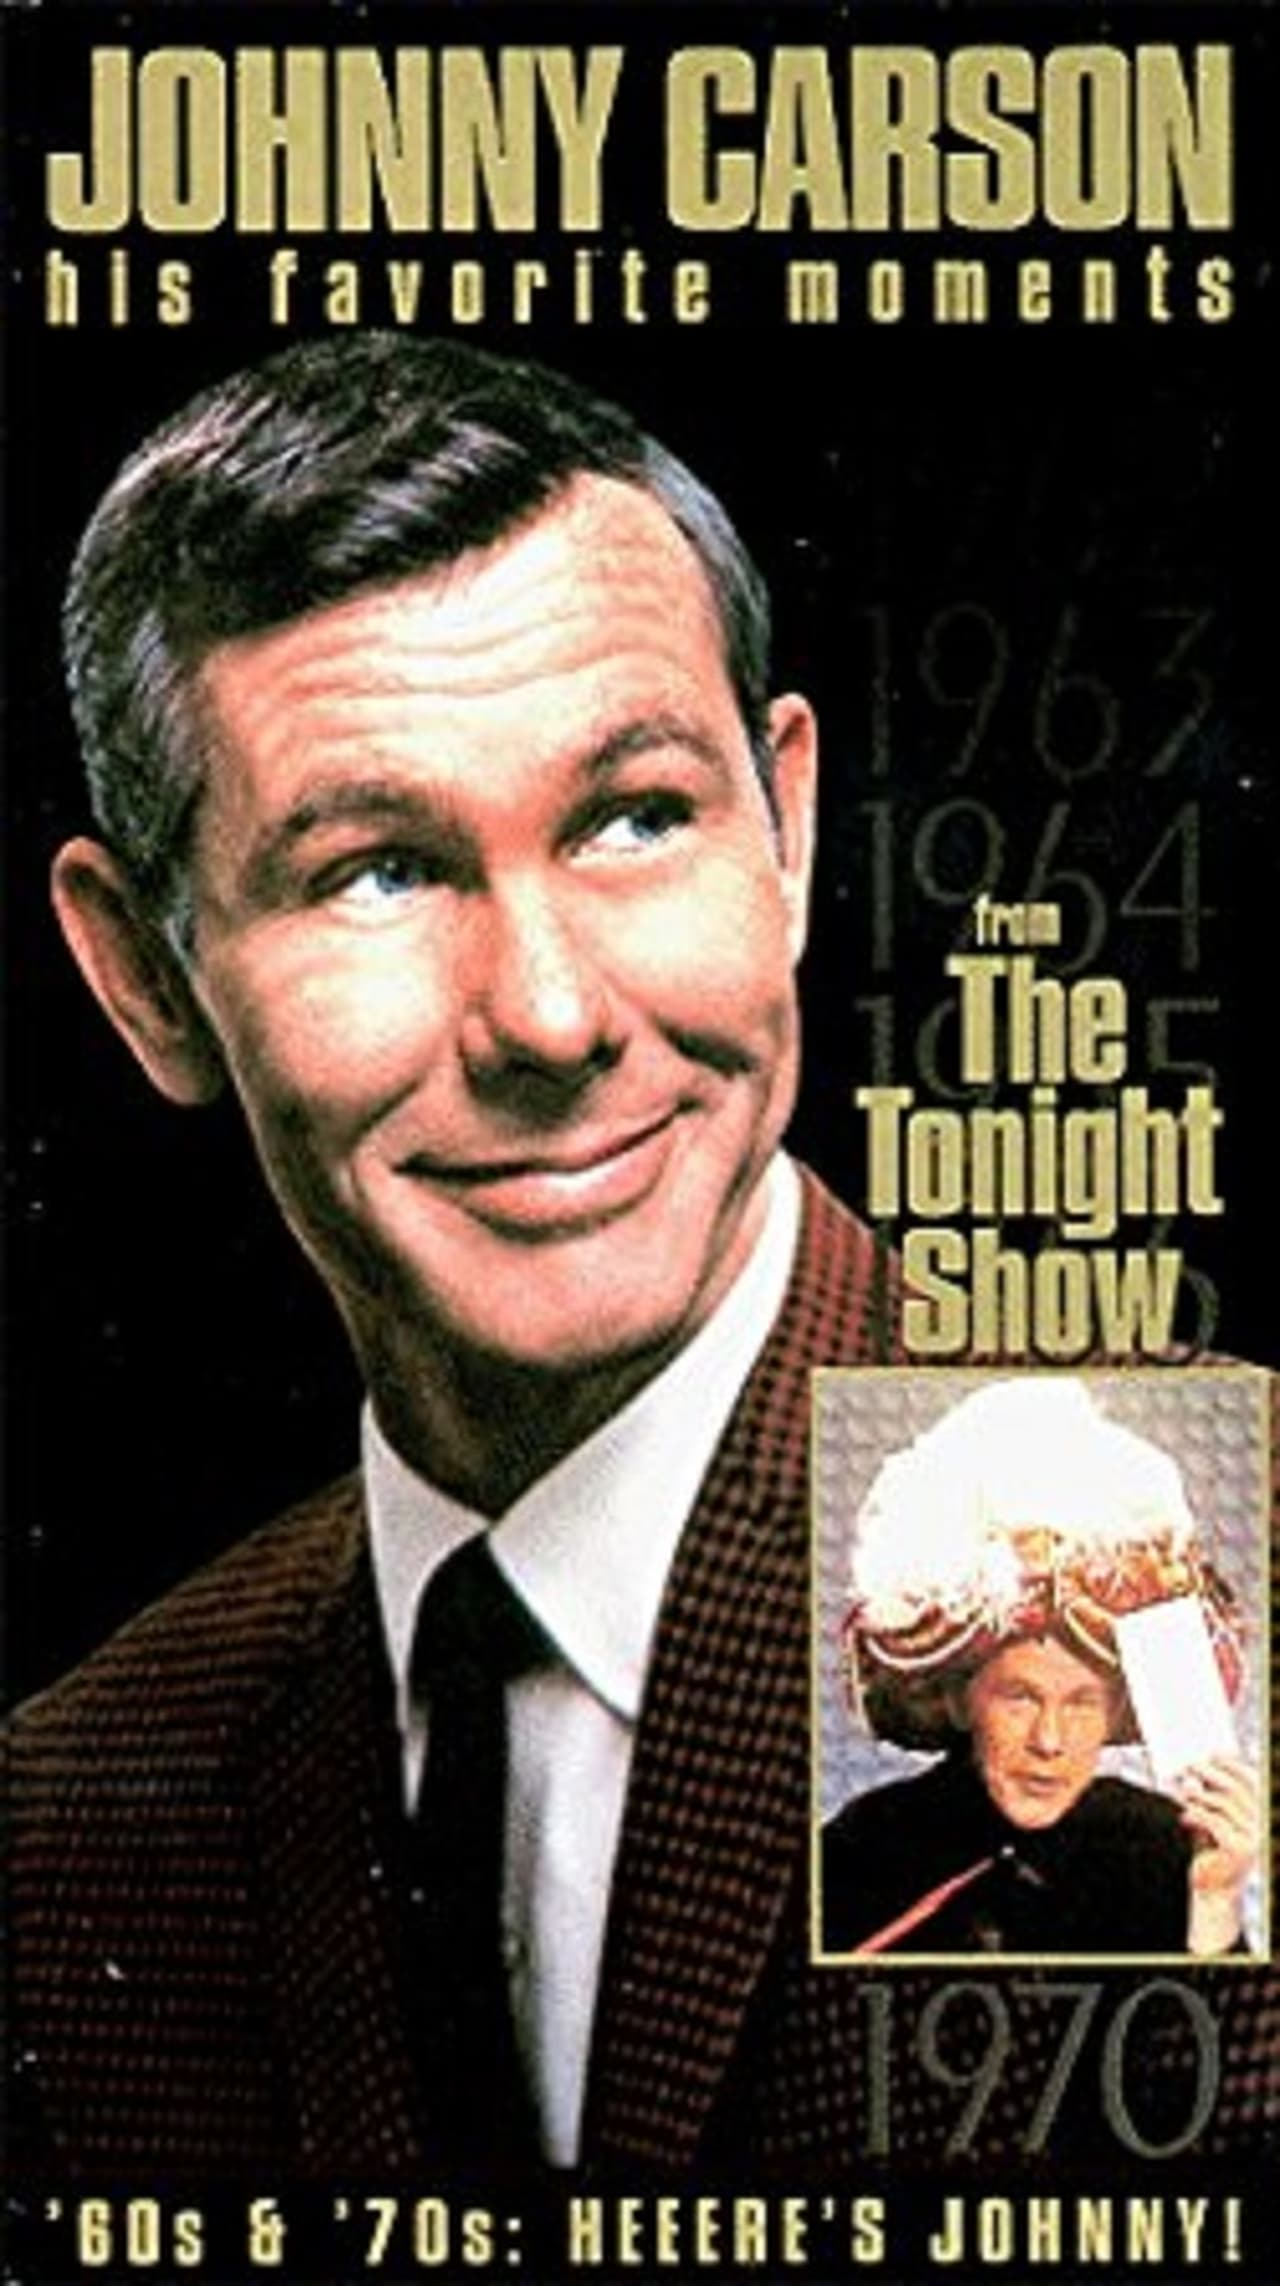 Johnny Carson - His Favorite Moments from 'The Tonight Show' - '60s & '70s: Heeere's Johnny!